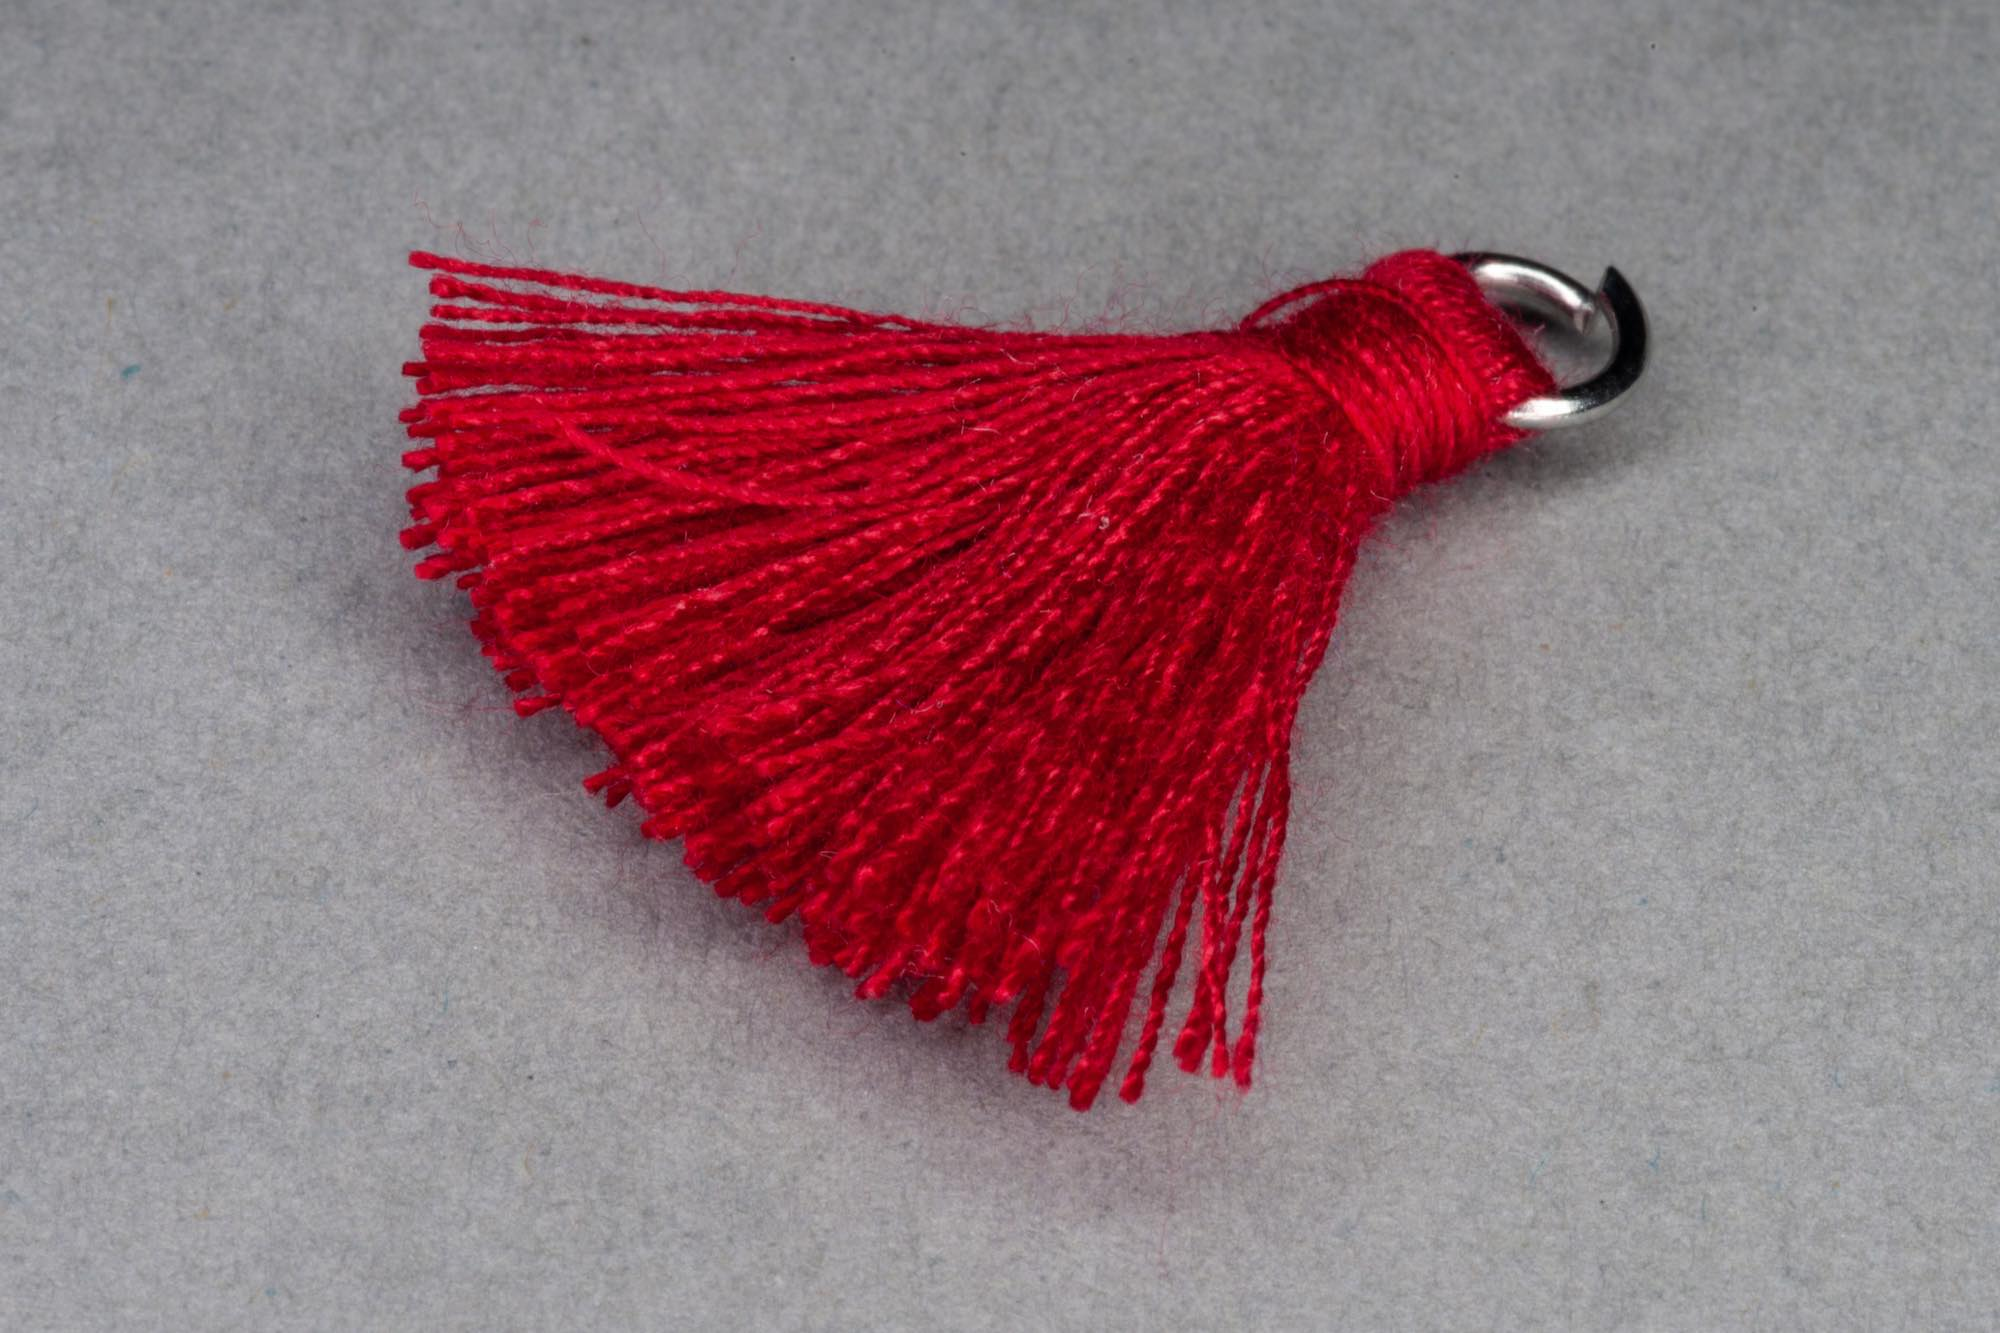 Red Thread Tassel approx 28mm including hanging loop